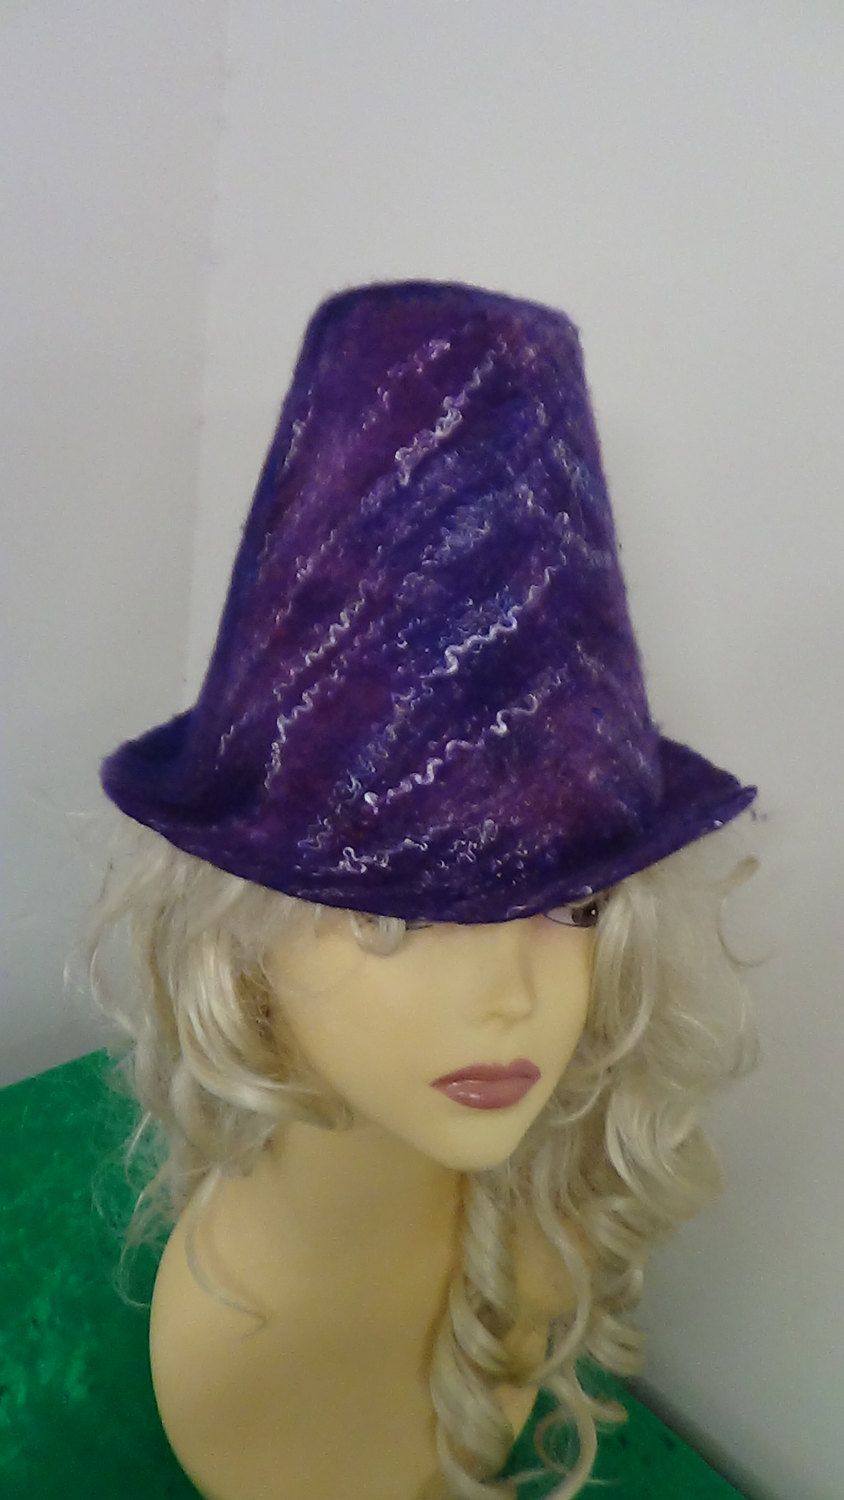 Hat,Felted hat, Fairy, OOAK, Handmade, in USA, , Wearable art, Organic,women hat, art hat, felted art, Renaissance hat, Wonderland by rafaelart on Etsy